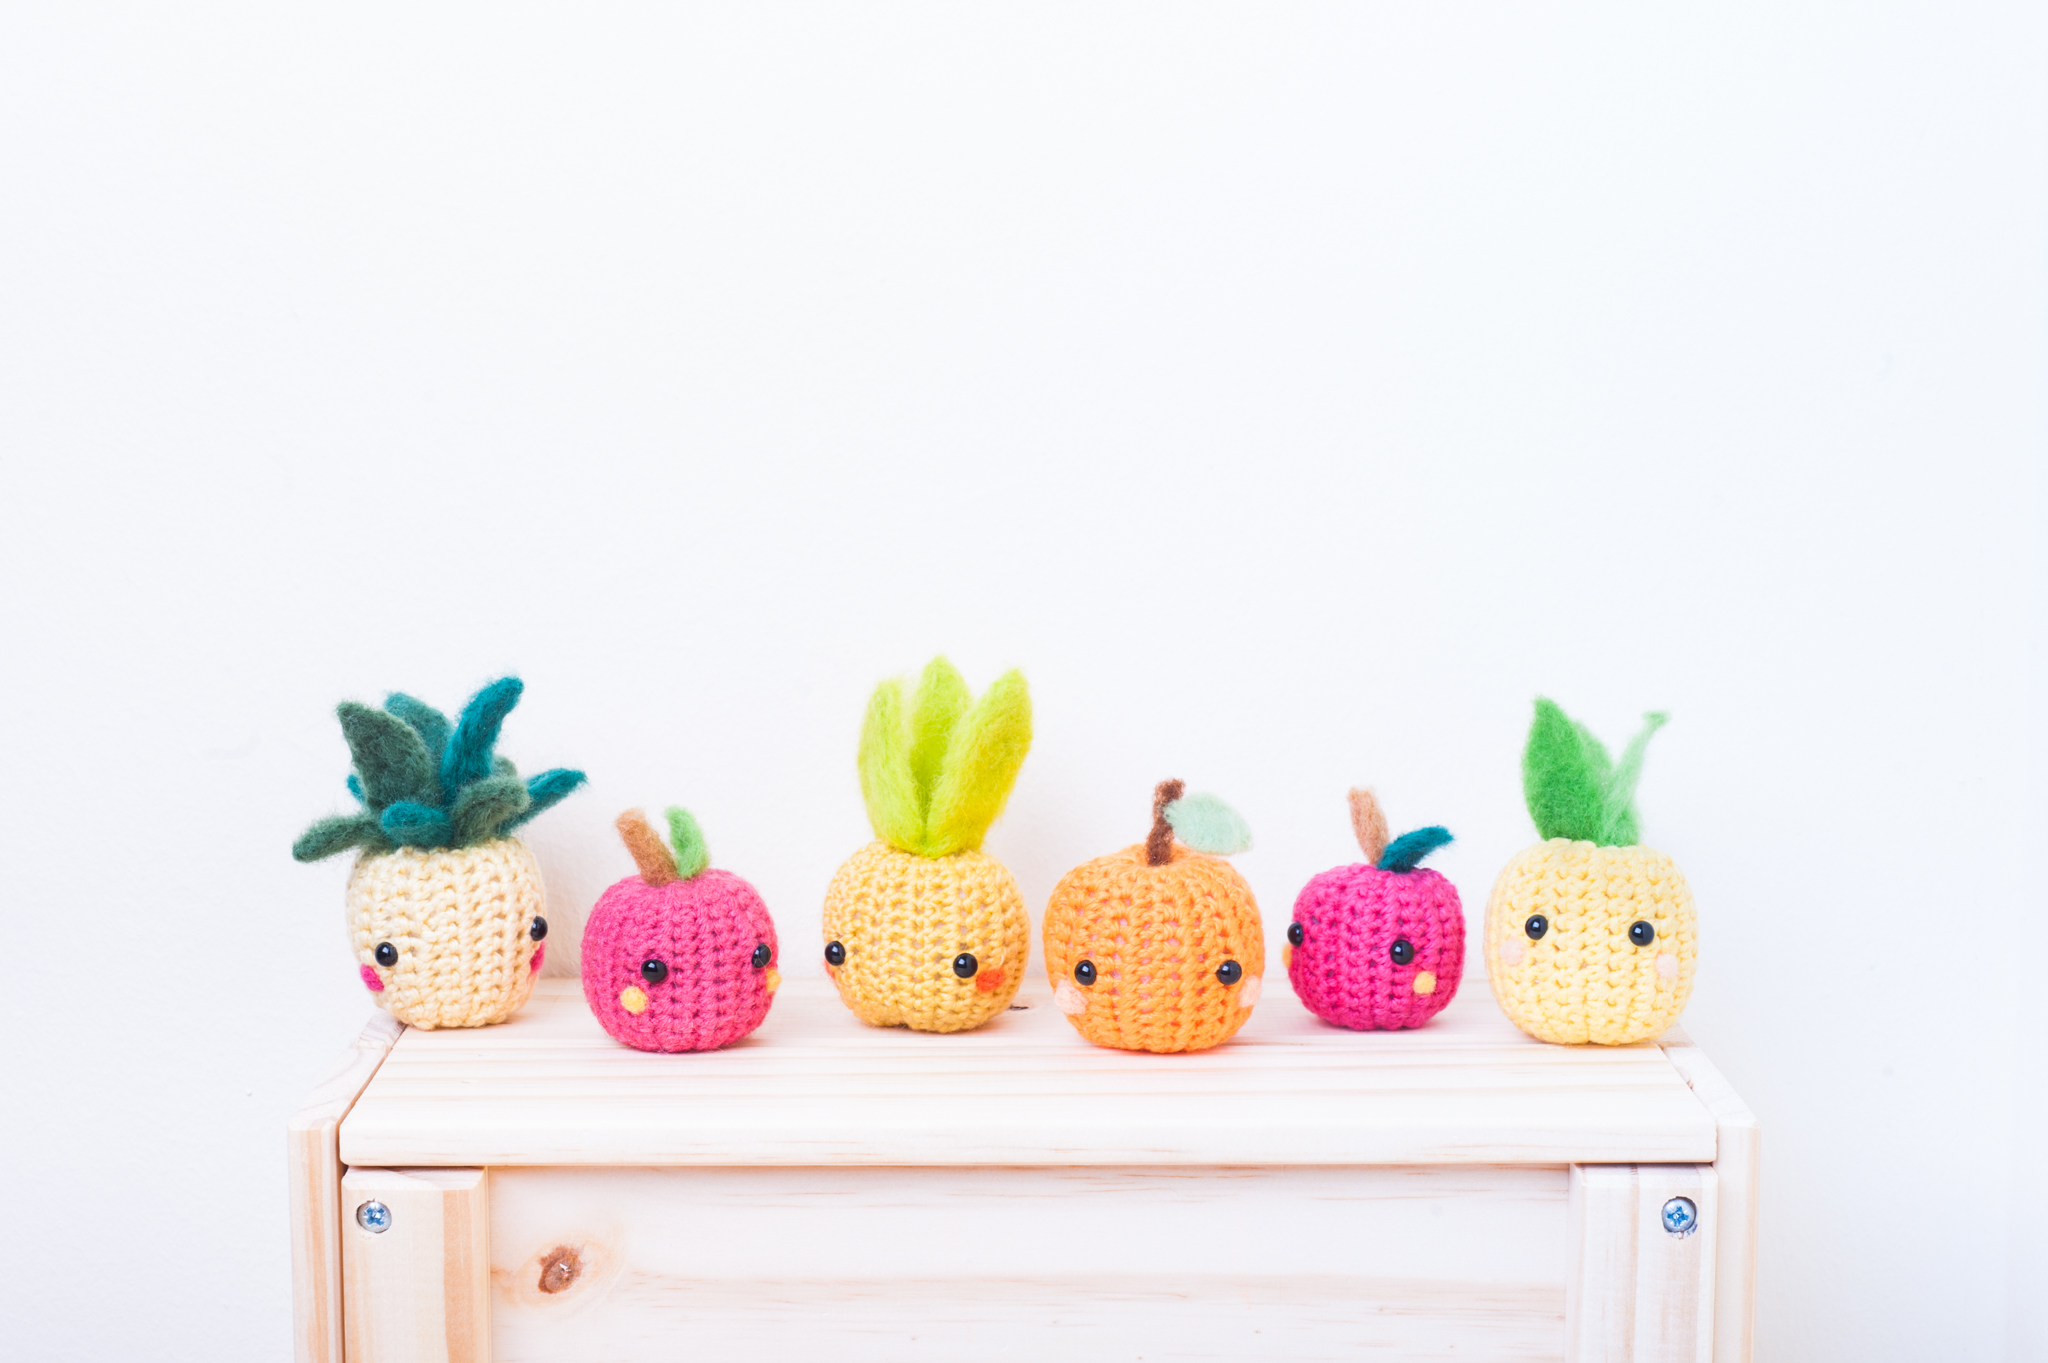 tiny rabbit hole - Learn how to felt a fruits buffet material kit in our chinatown studio.